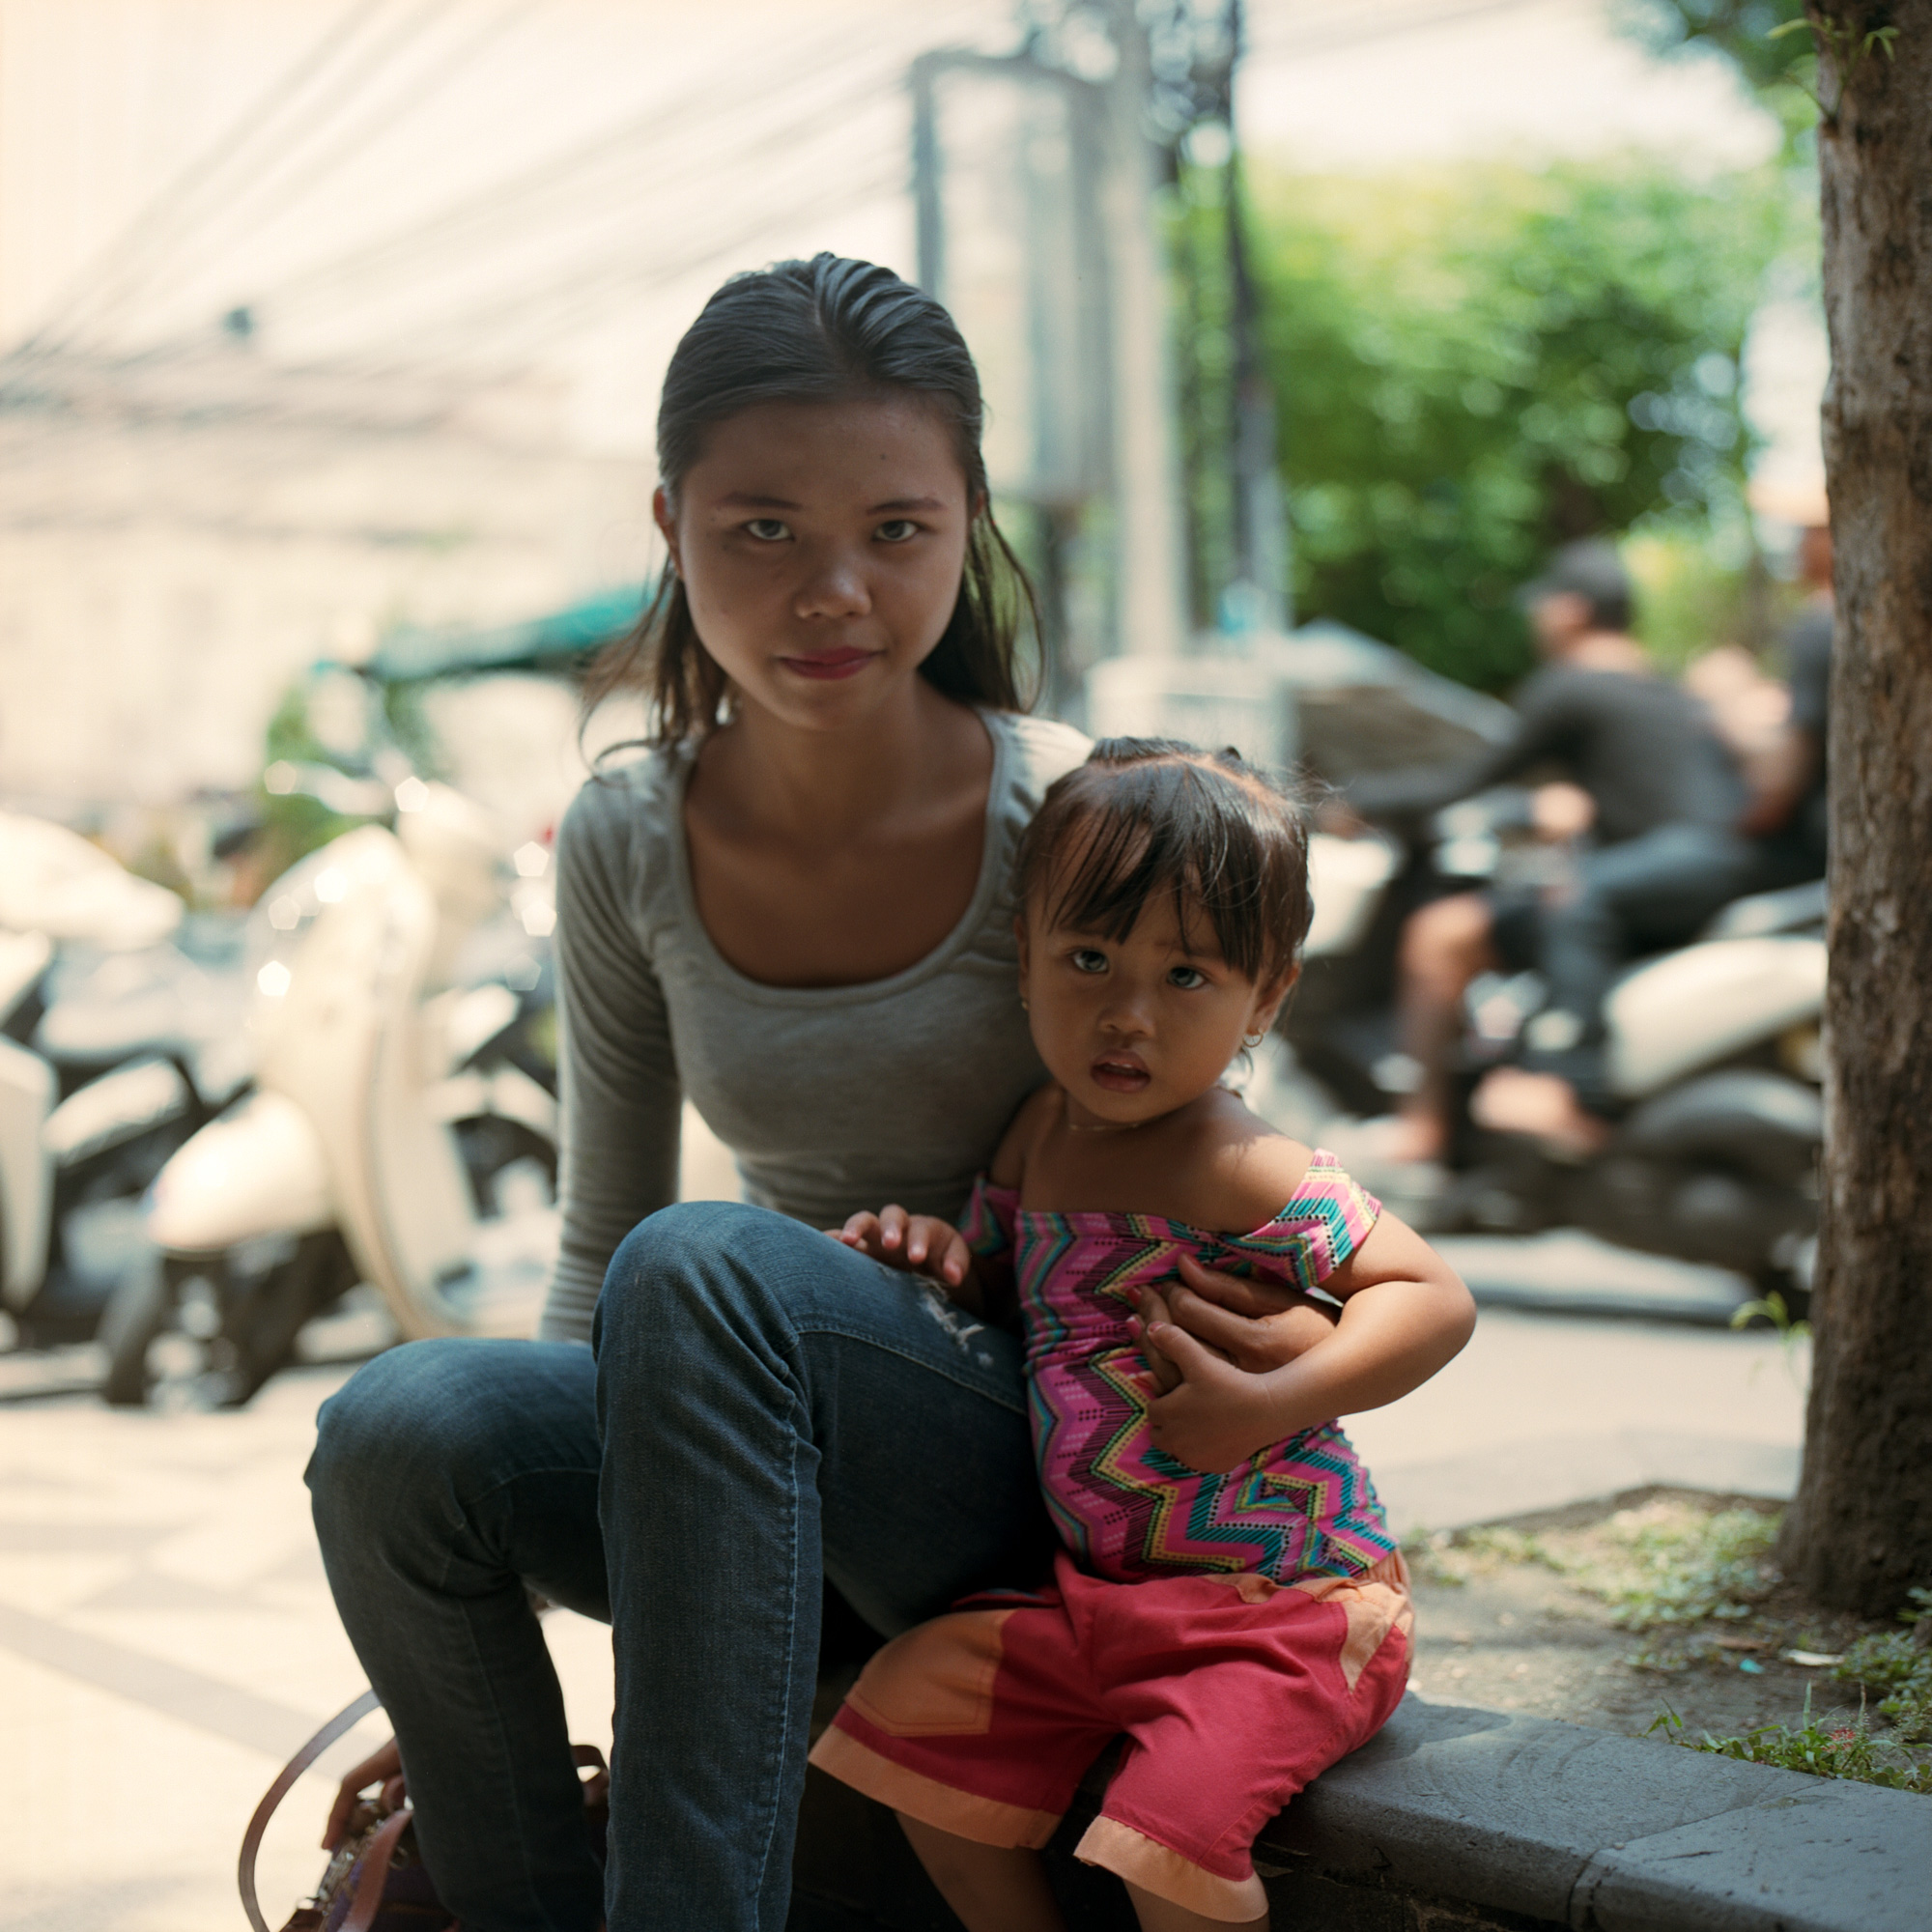 Mum And Daughter Kuta Streets, Bali, Eastern Travels, Photography By Ioannis Koussertari